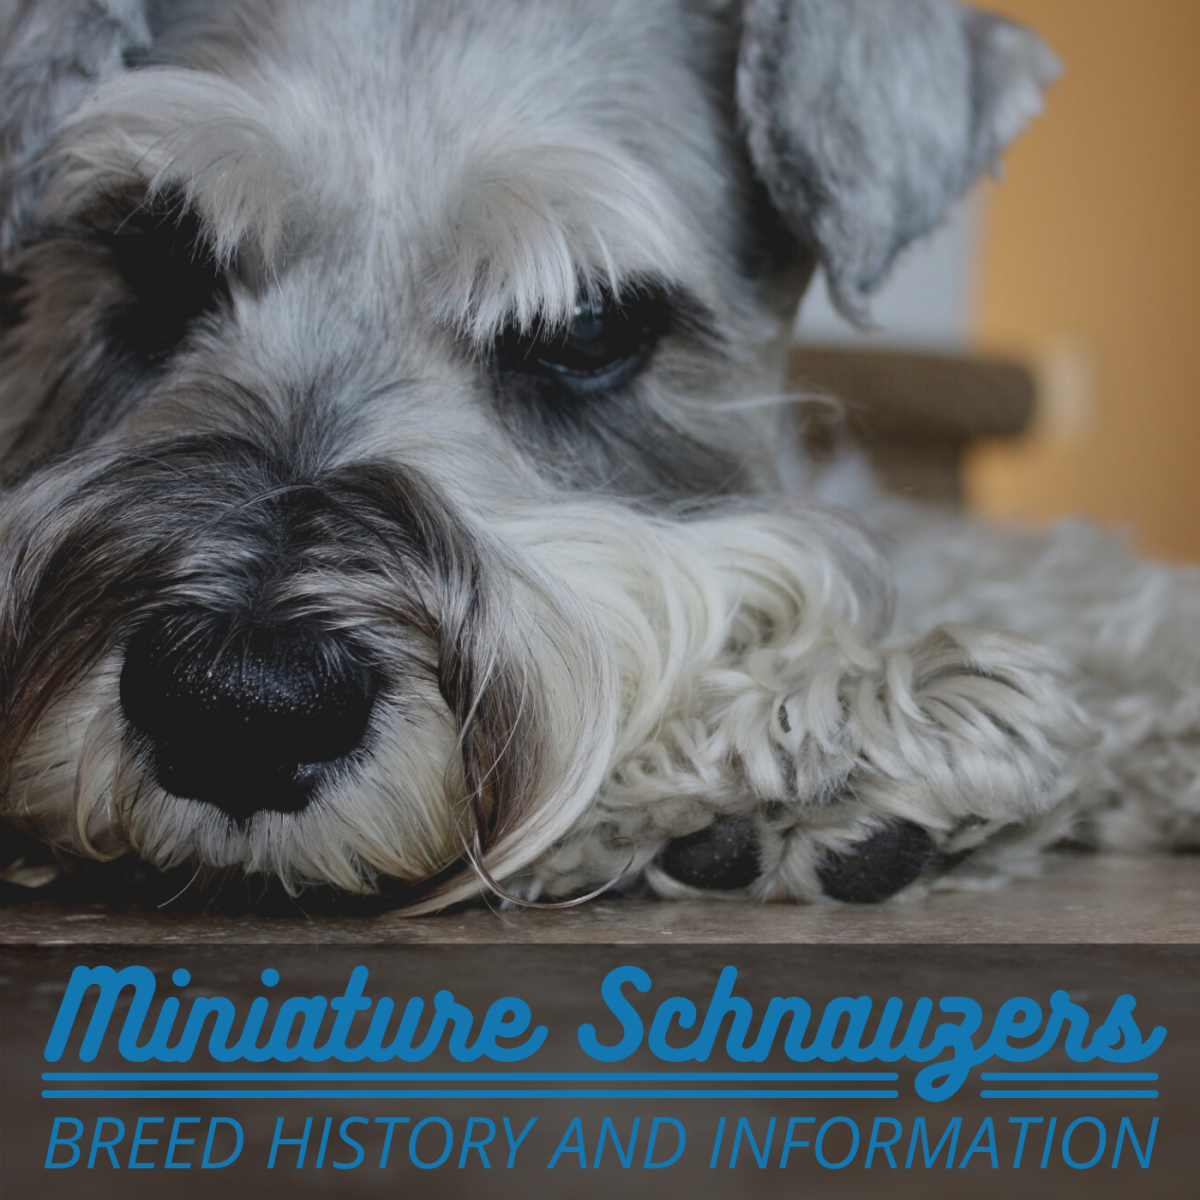 Where do Miniature Schnauzers come from and what are they like?